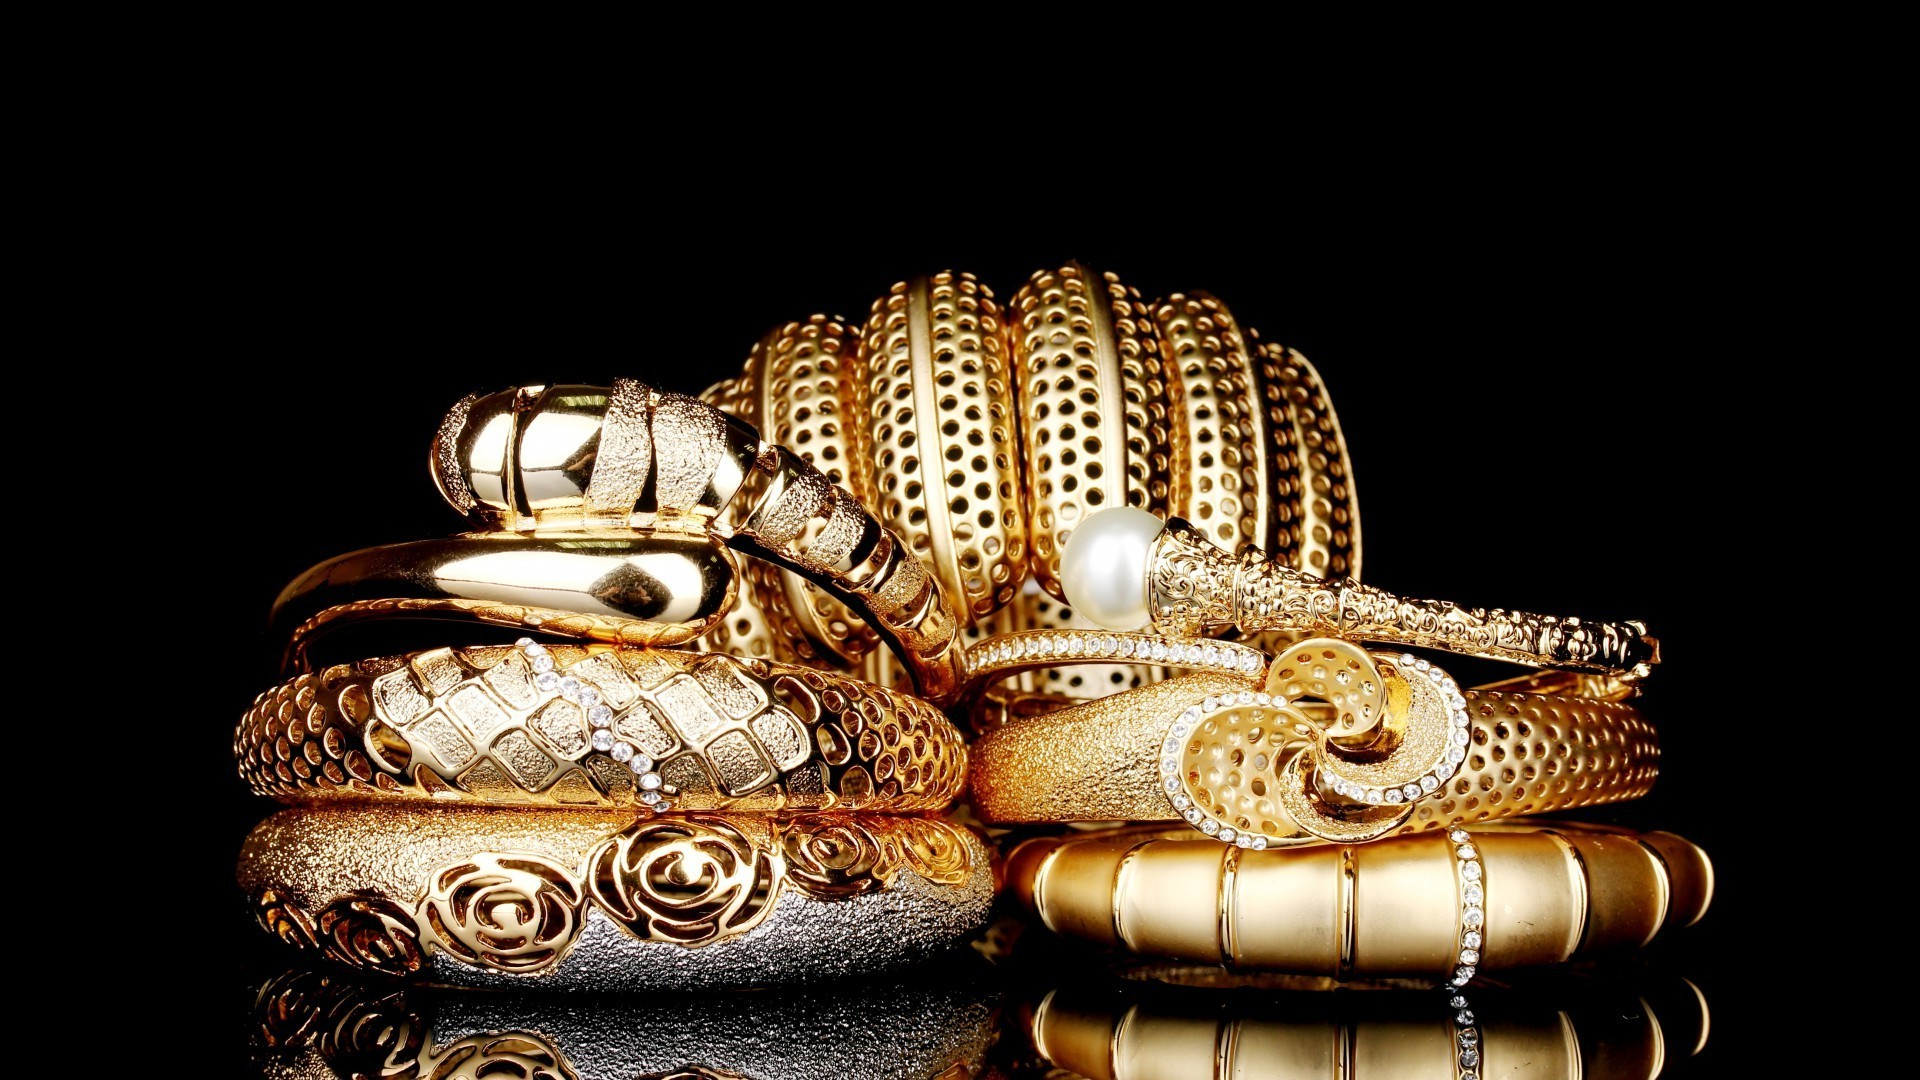 Gold jewelry android wallpapers for free - Gold wallpaper for android ...